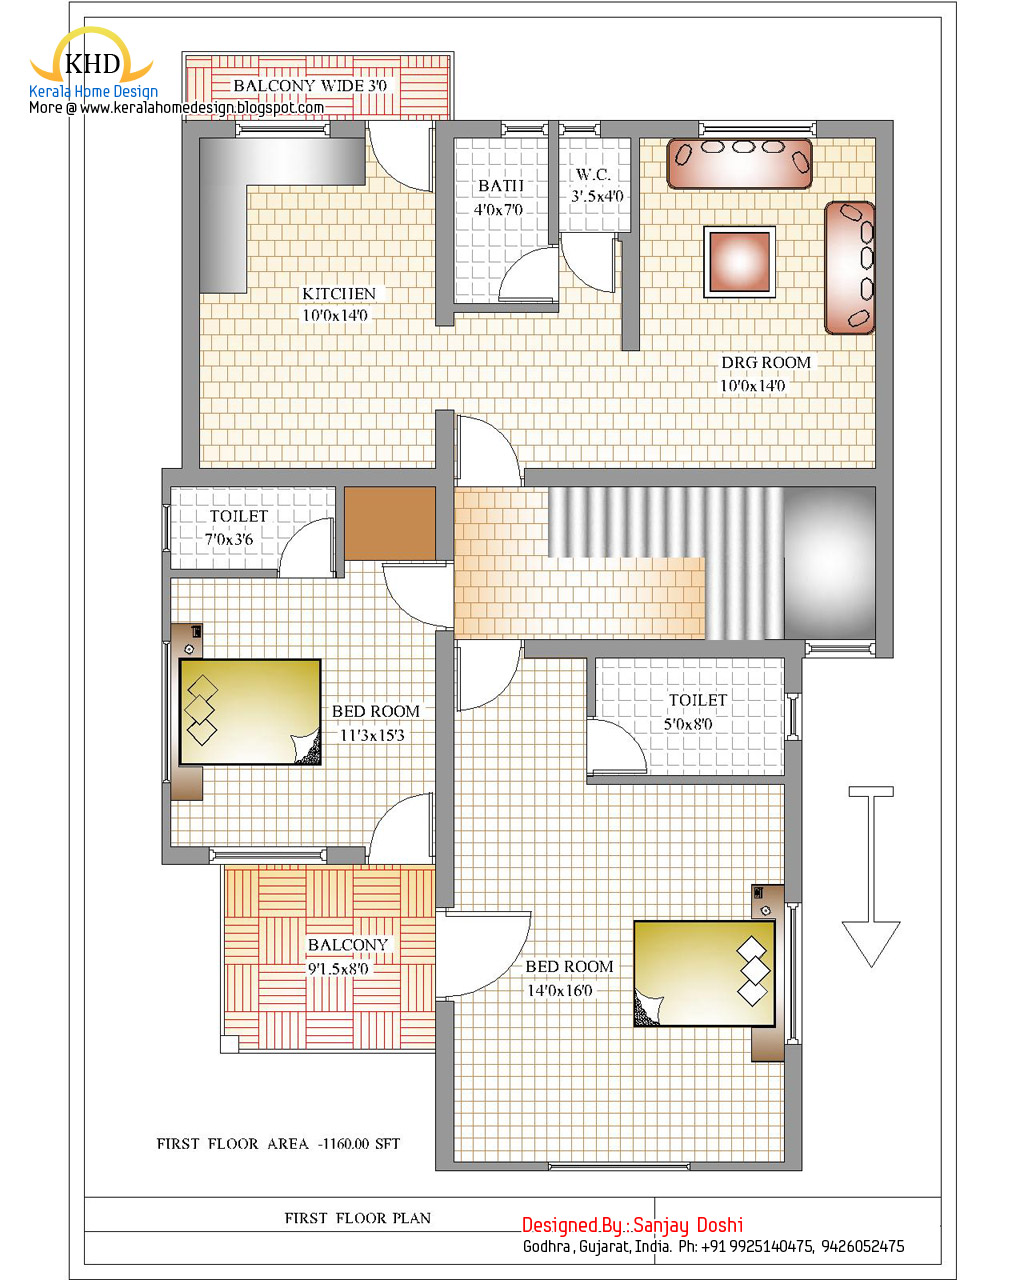 Duplex house plan and elevation 2310 sq ft indian home decor Building plans and designs